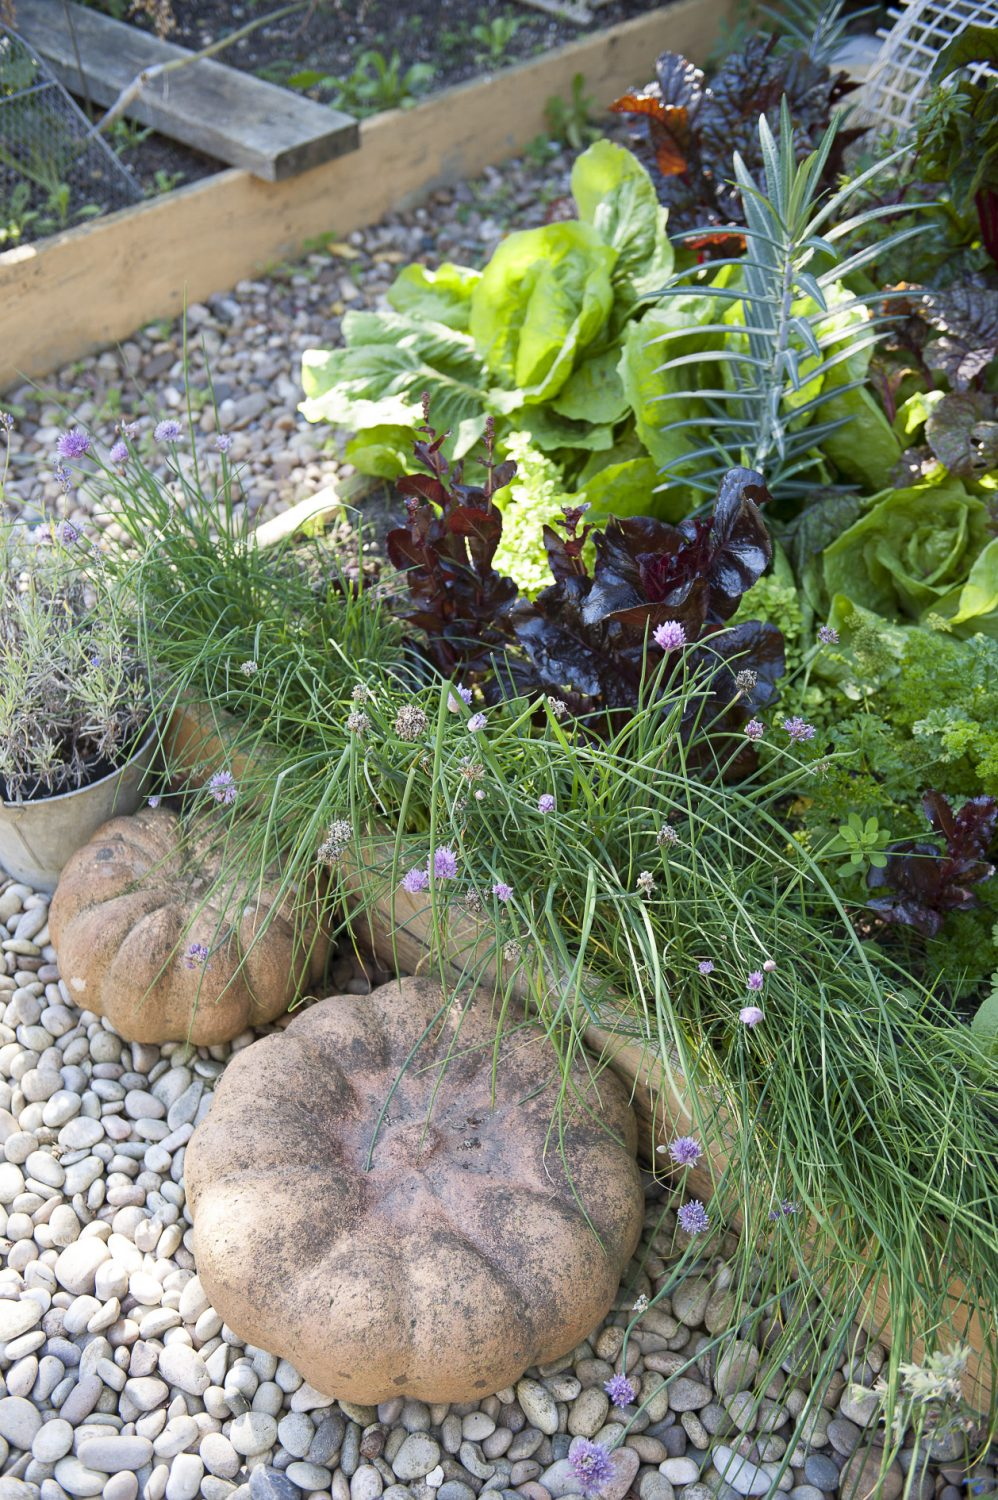 Herbs and salad plants destined for the kitchen